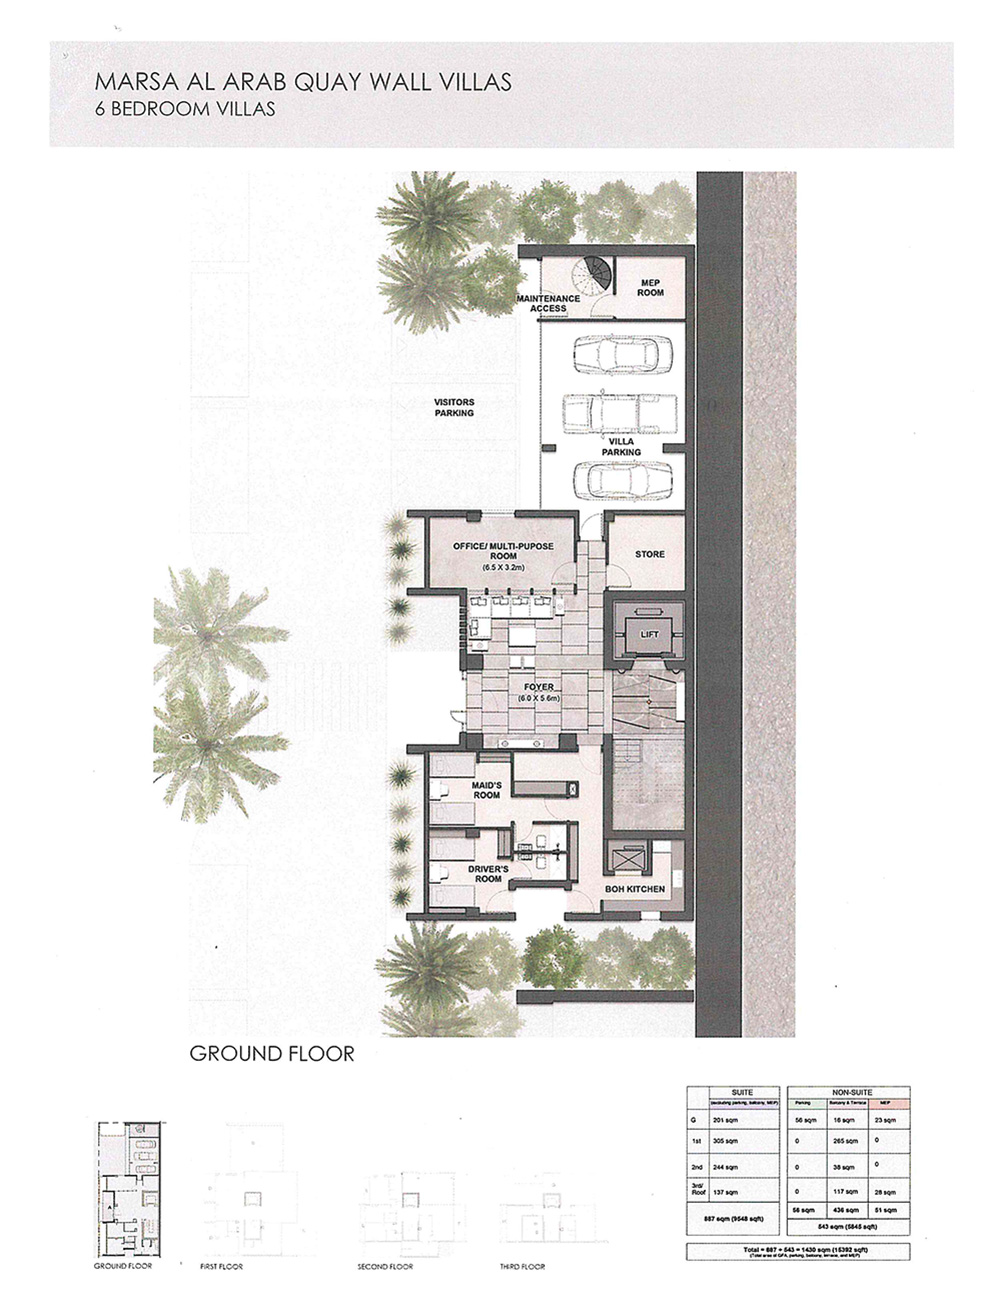 https://drehomes.com/wp-content/uploads/6-Bedroom-Villas-Ground-Floor-15392-SqFt.jpg